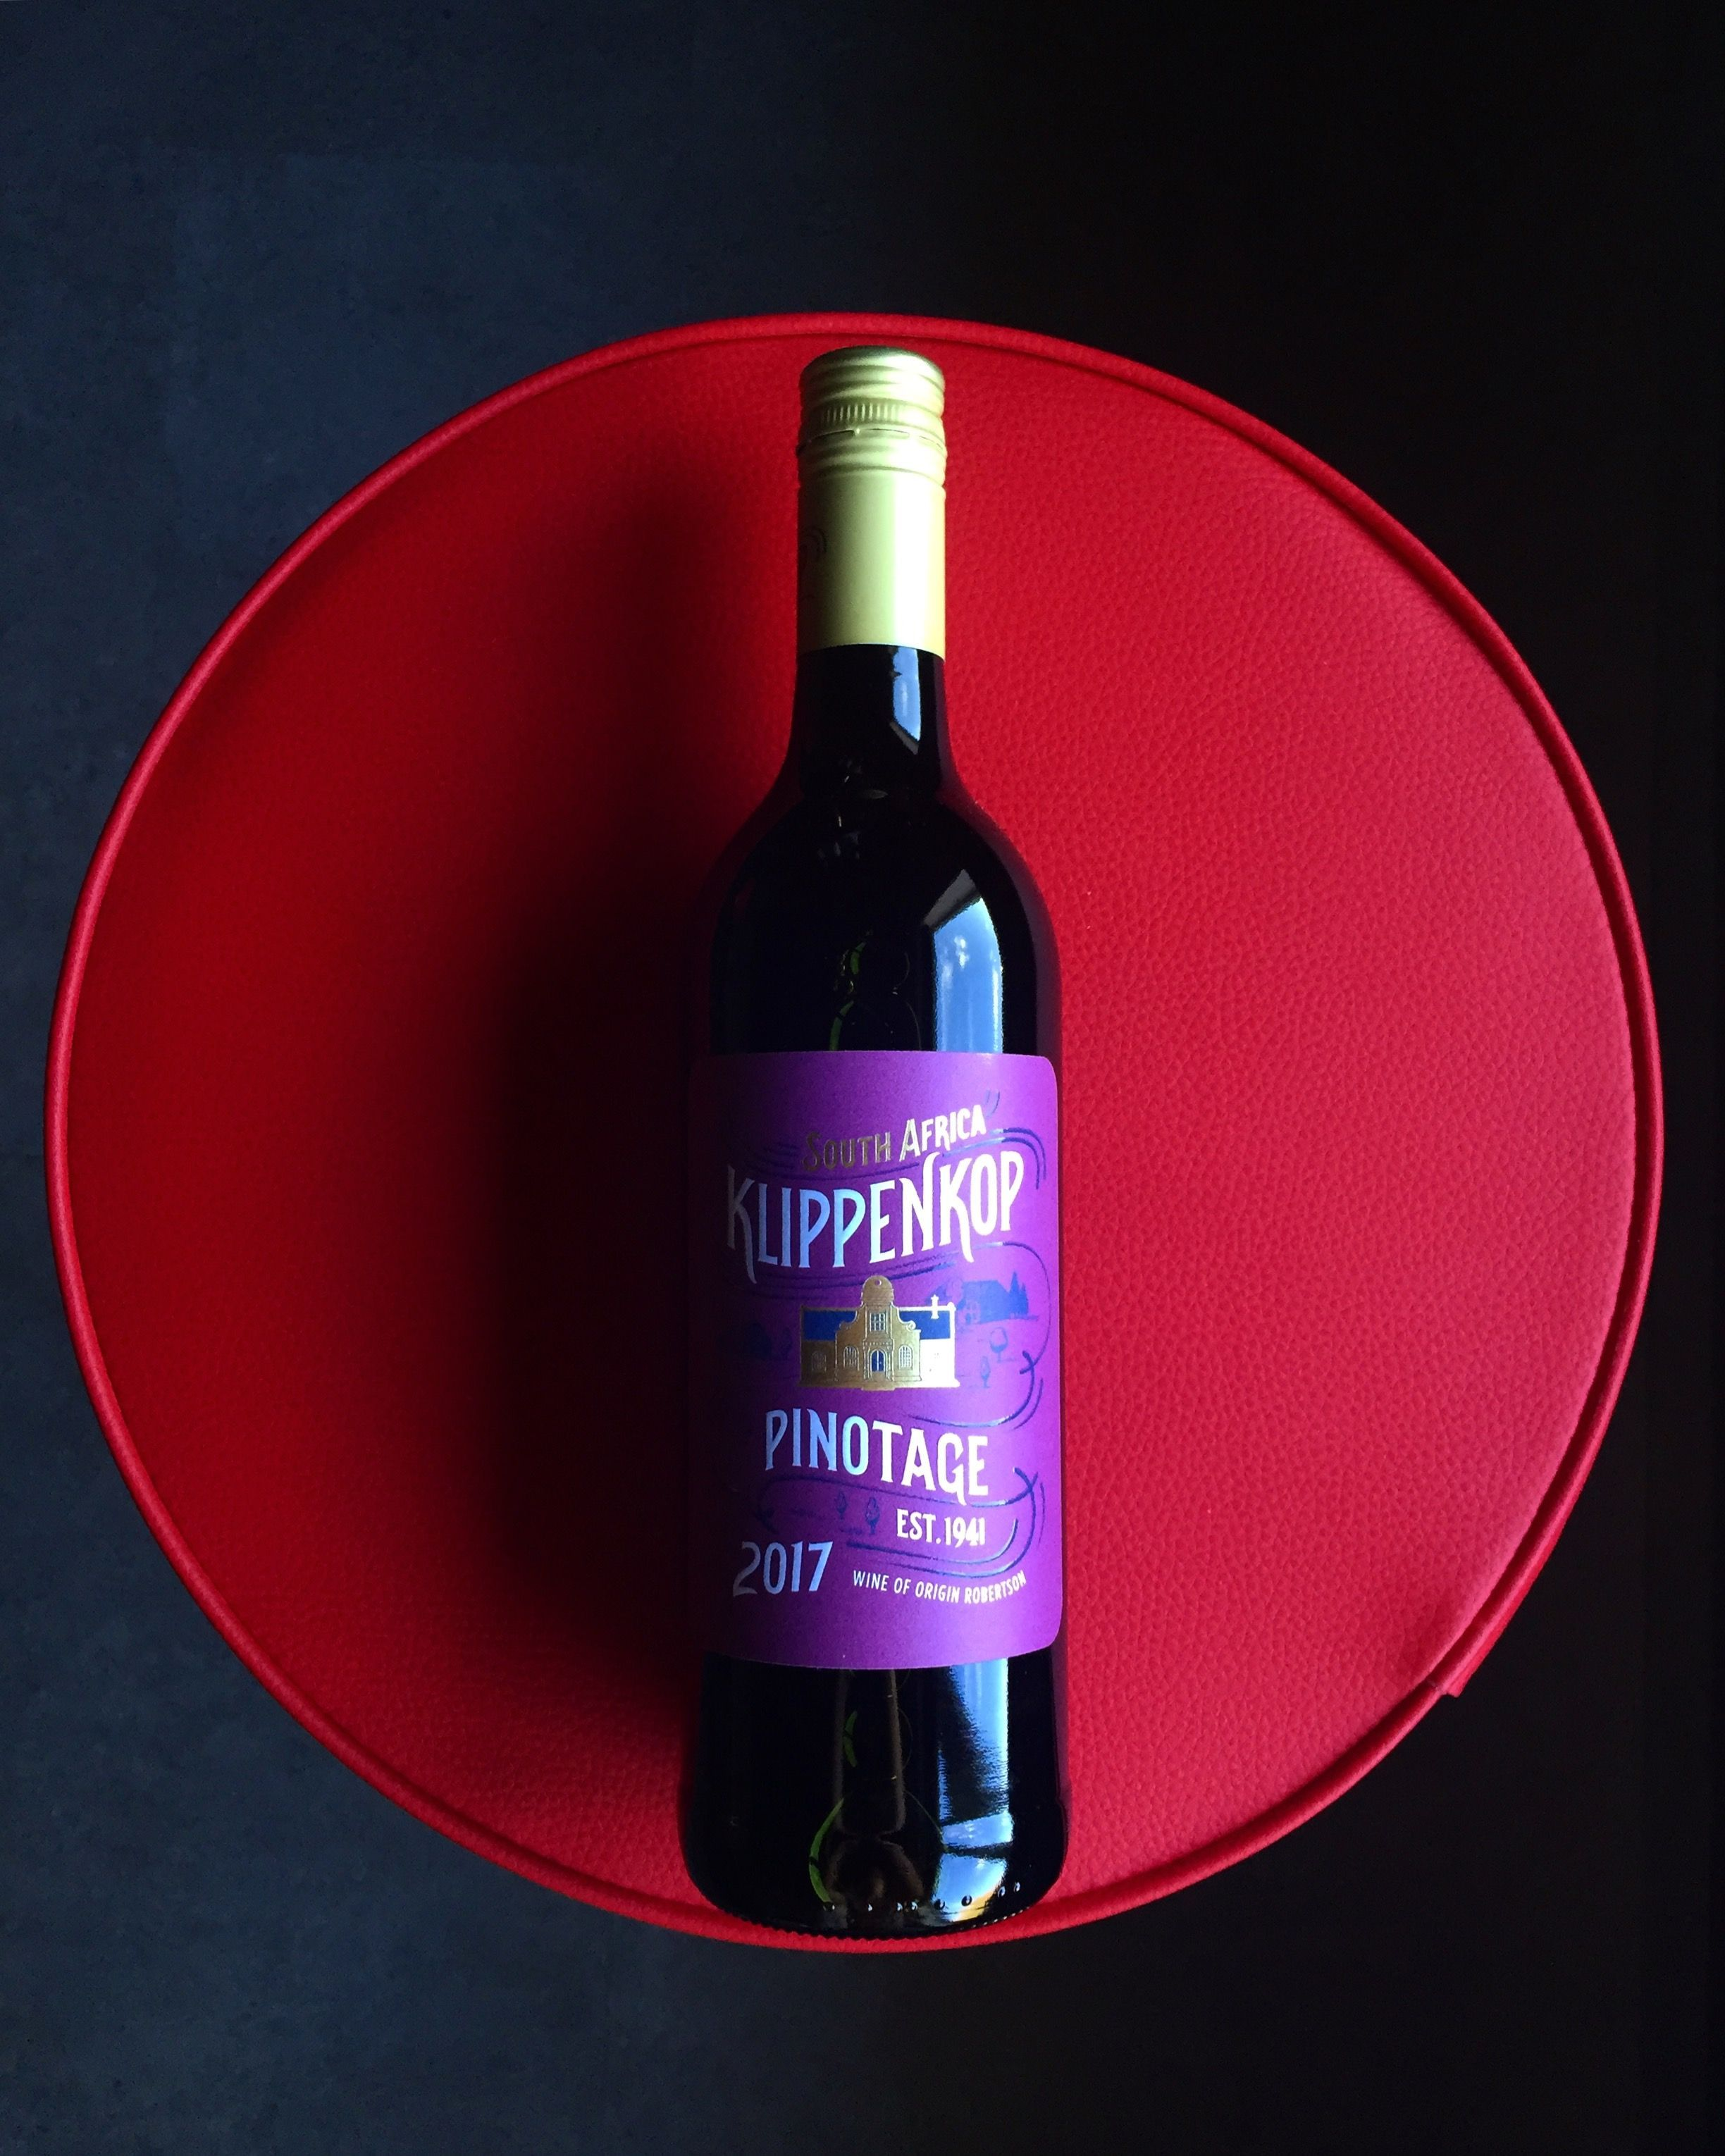 Klippenkop Pinotage Dark And Brooding Black Fruit With A Hint Of Chocolate Nicely Matched With The Sofa A Blanket And A Good Tv Show Red Wine Wine Collection Wine